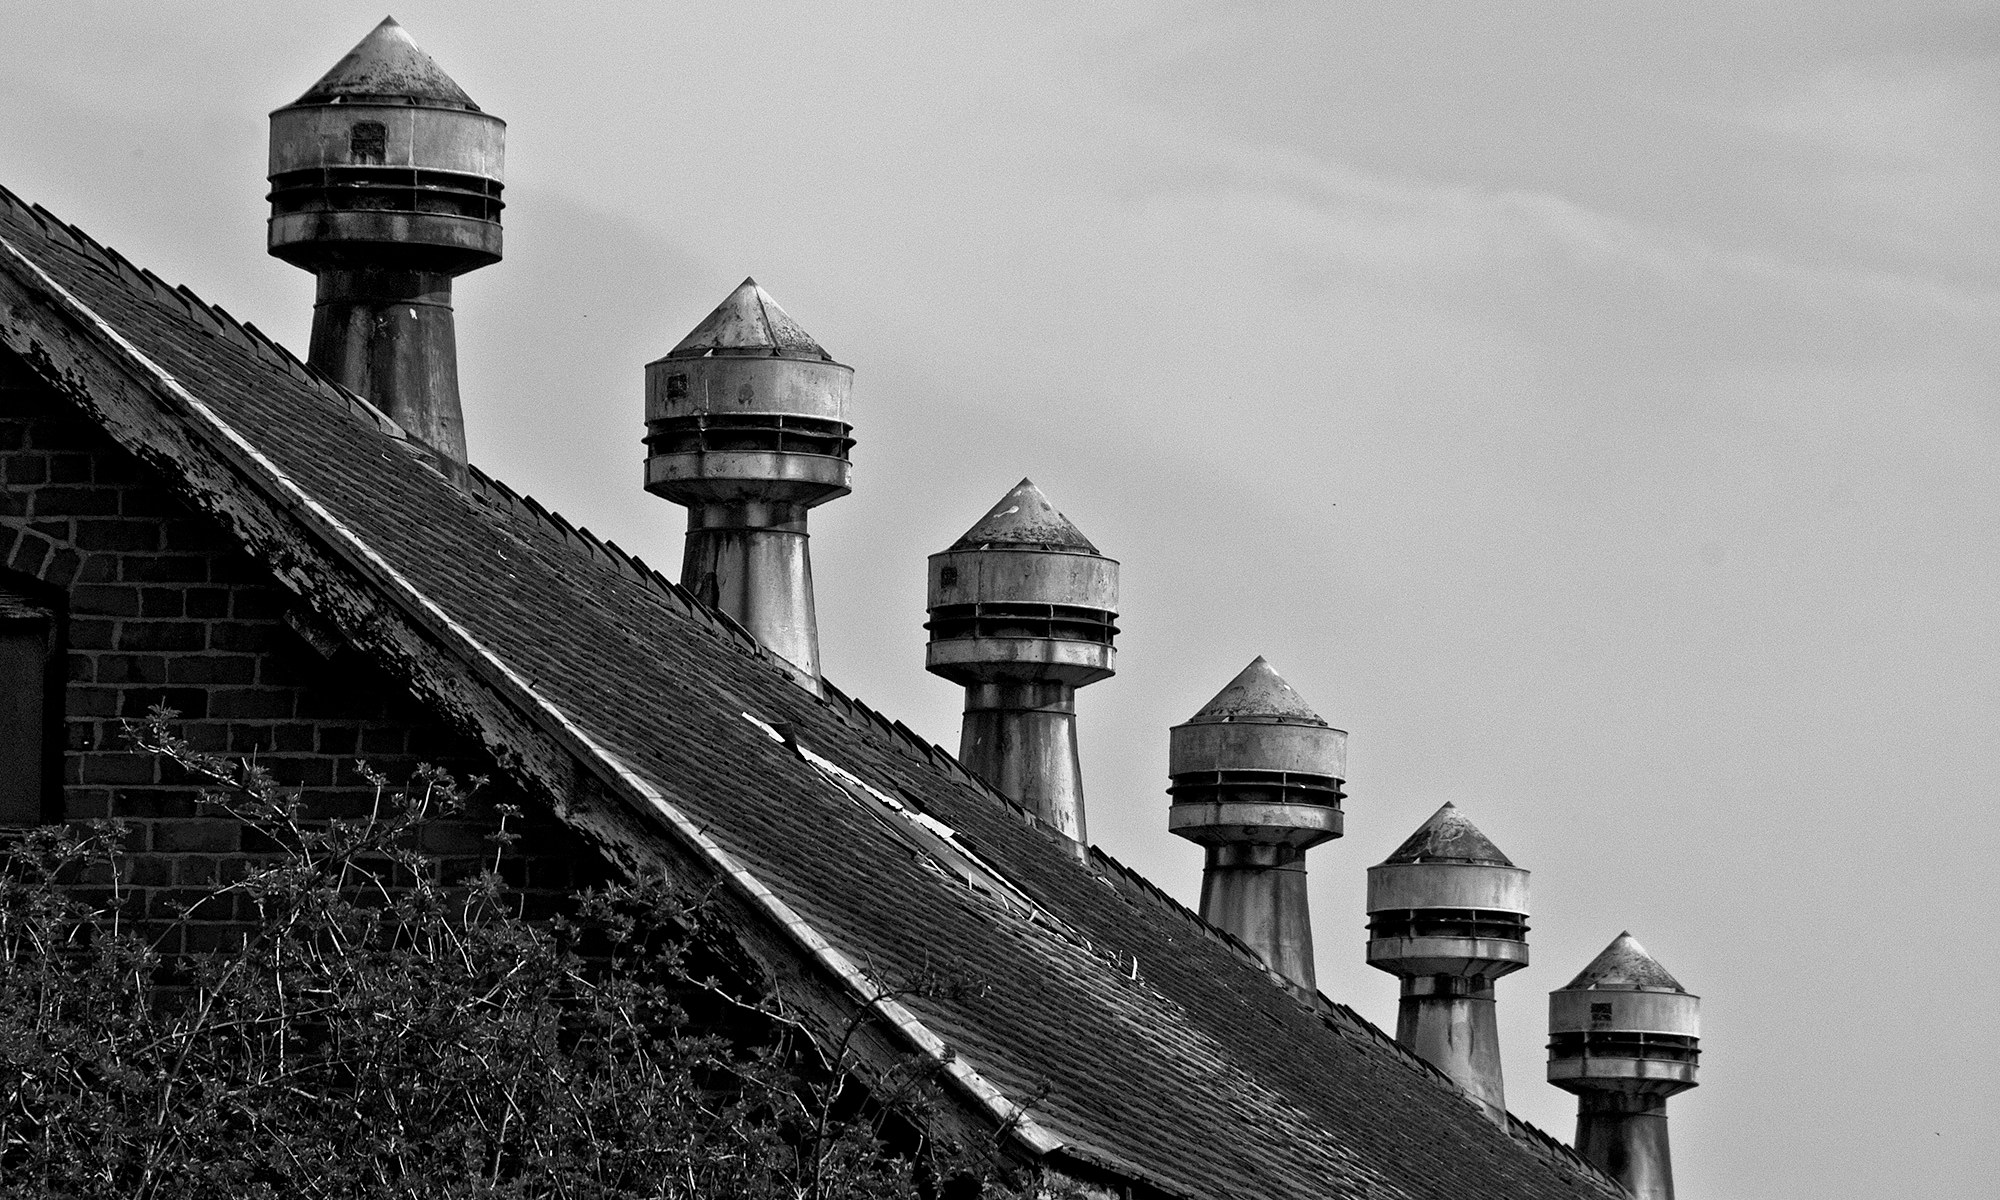 Ventilation Chimneys on Barn